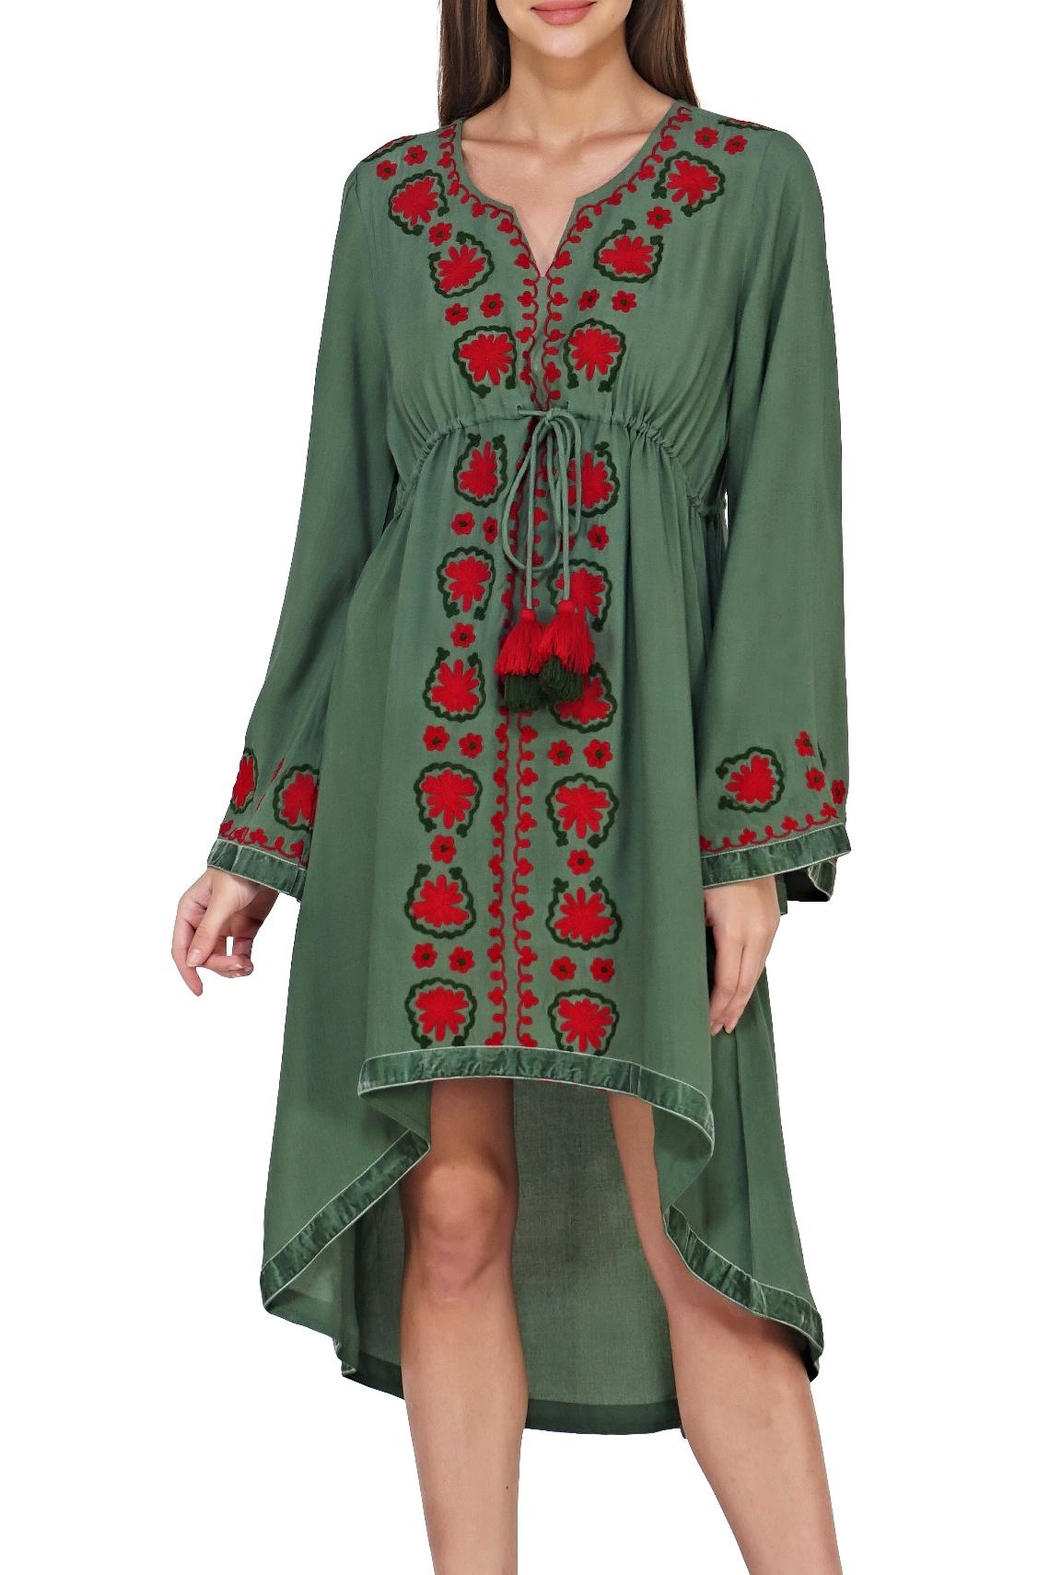 America & Beyond Embroidered Hi-Low Dress - Main Image